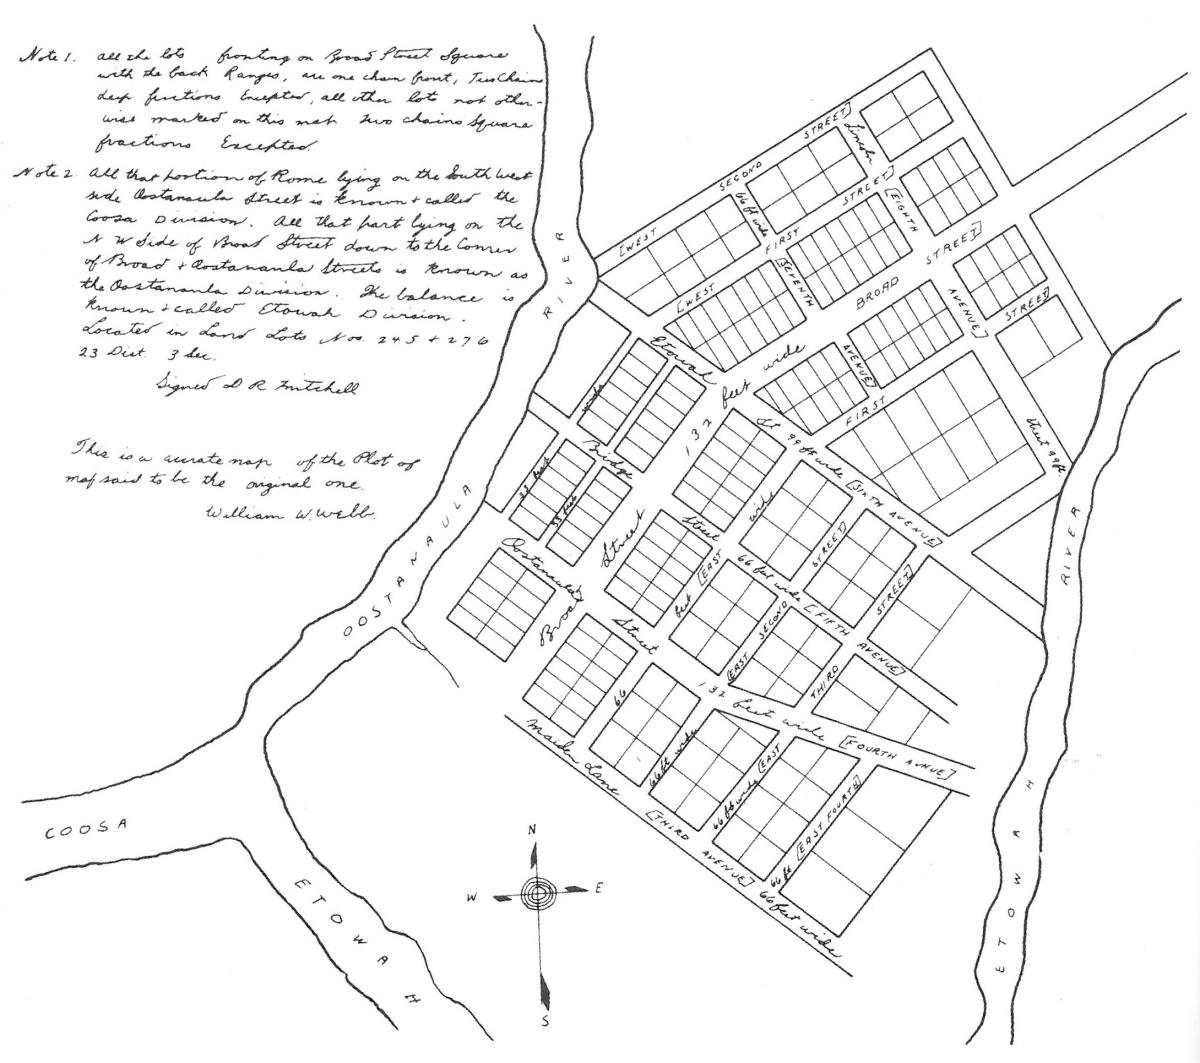 Copy of Sketch for the Layout of Rome, Georgia, 1834. Drawing by Daniel R. Mitchell. Courtesy of Rome Area History Museum.